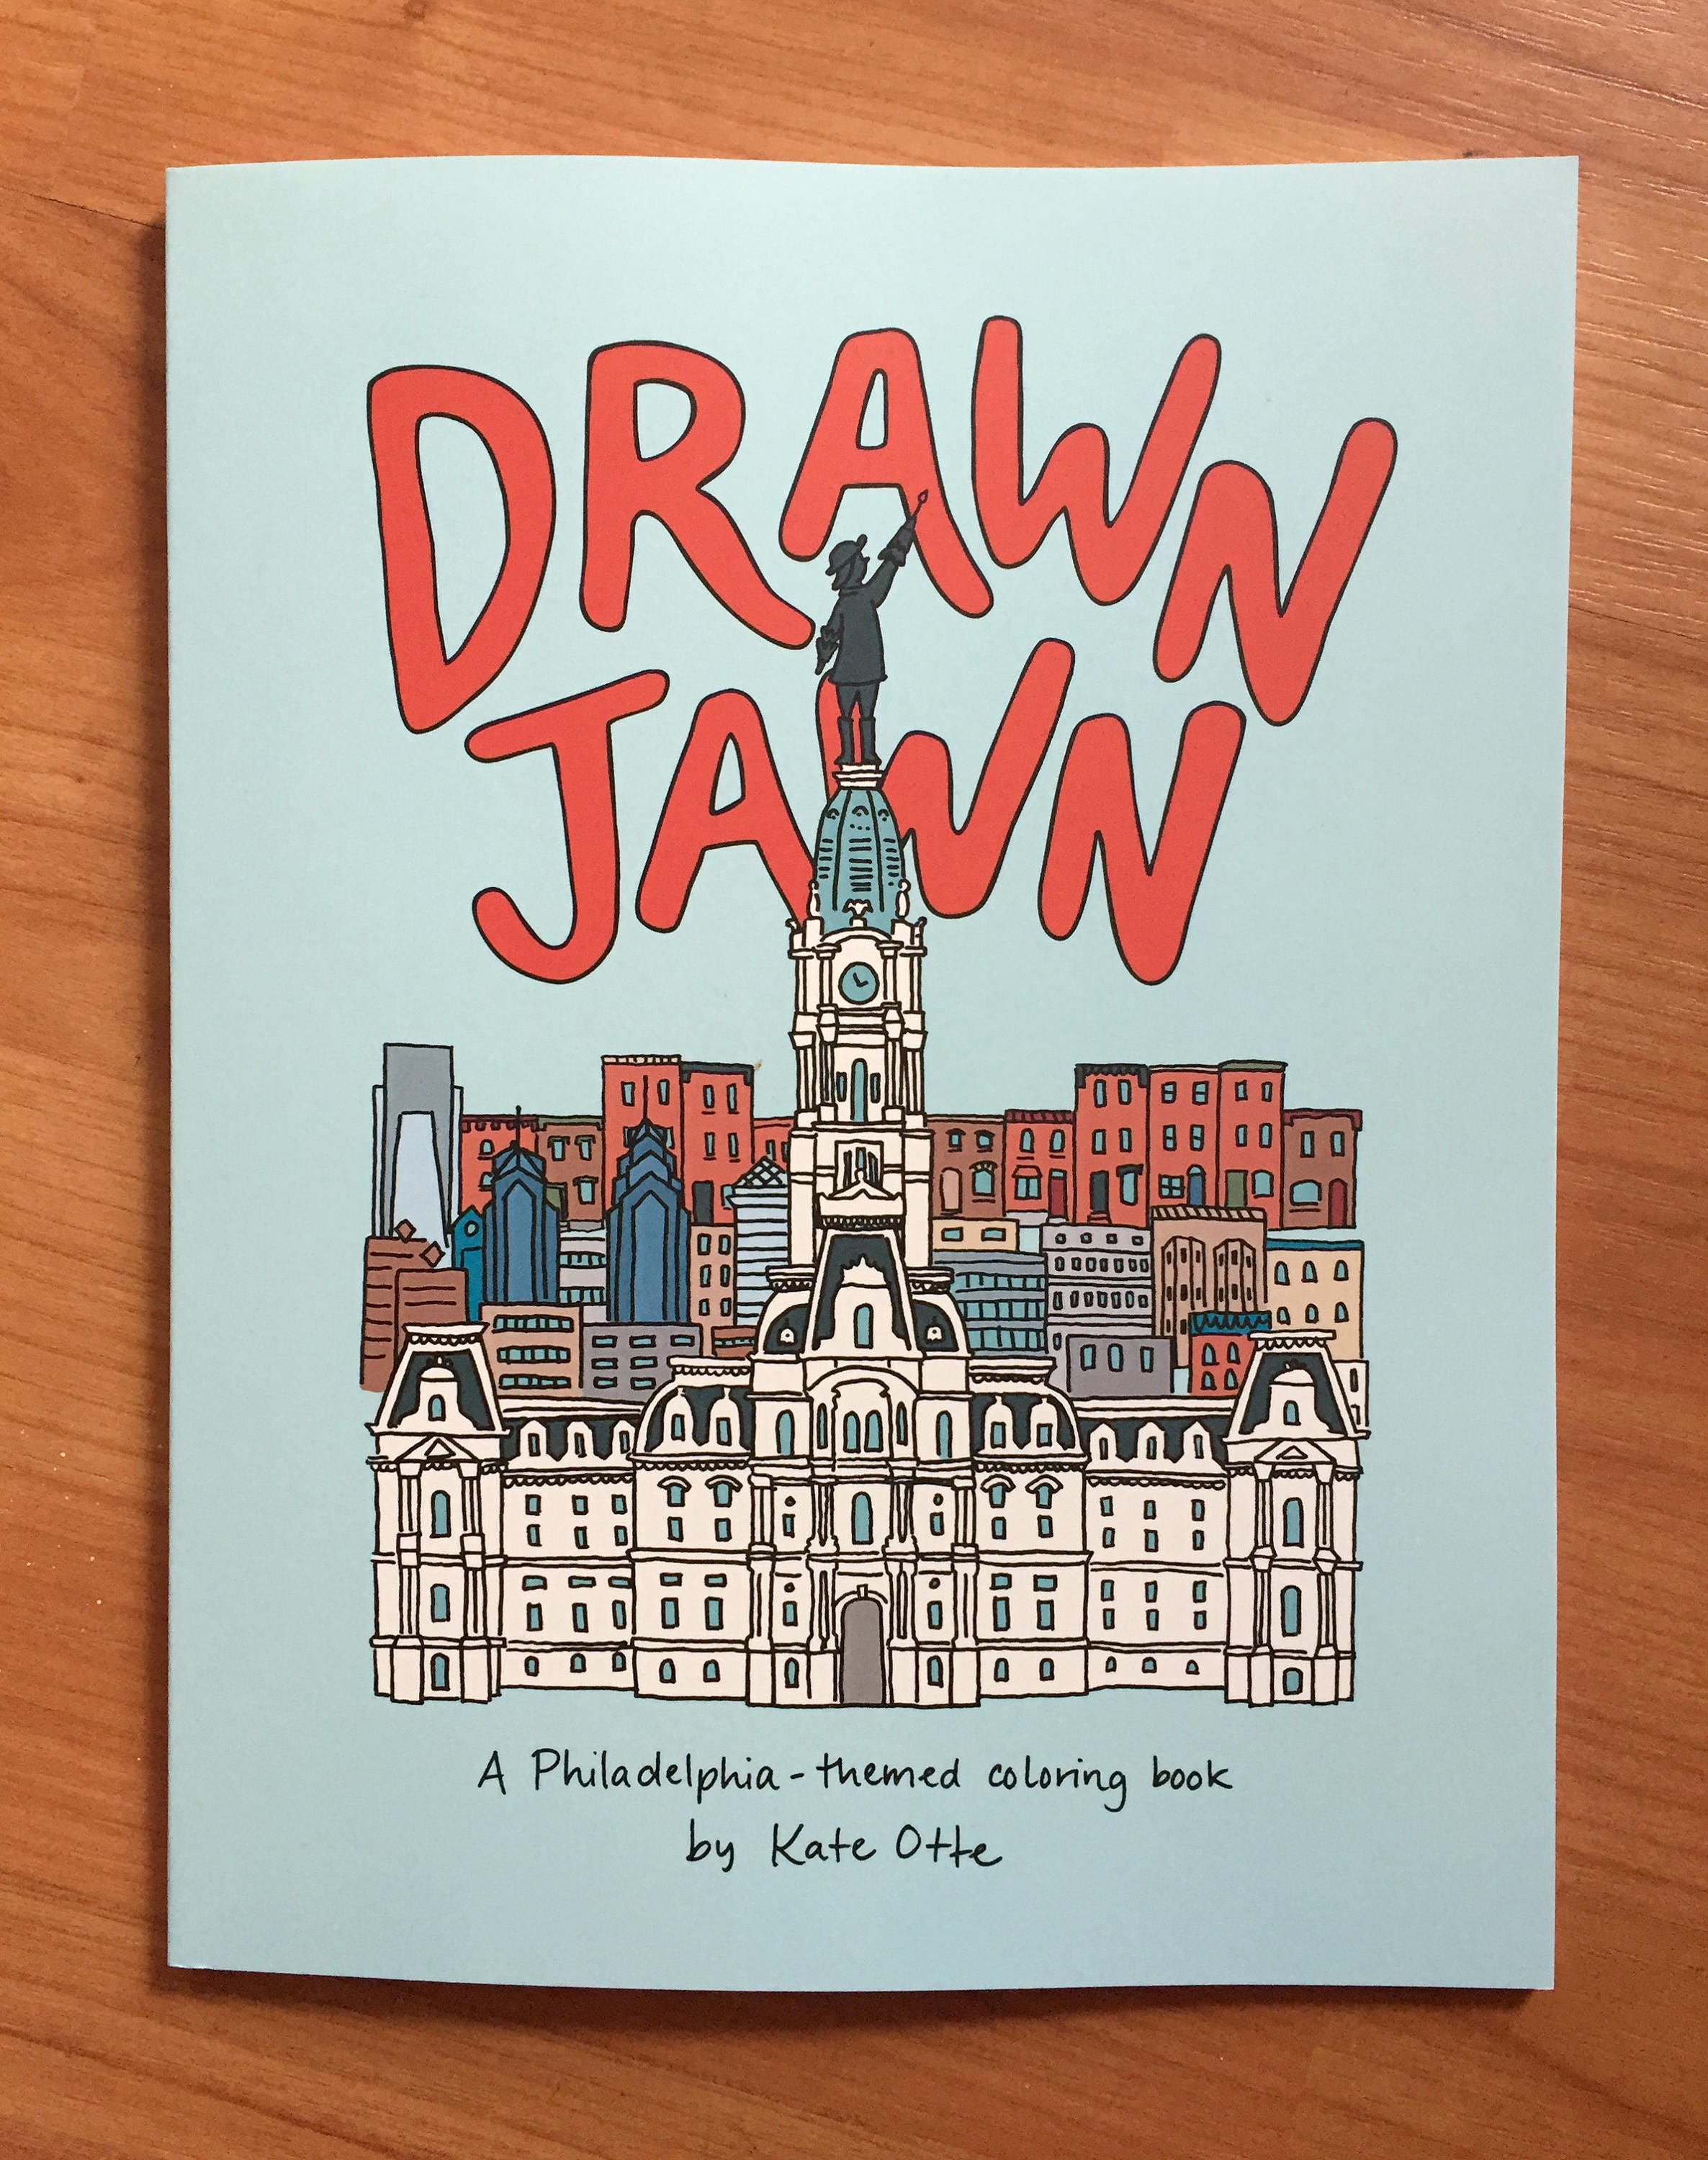 Drawn Jawn: A Philadelphia-themed coloring book